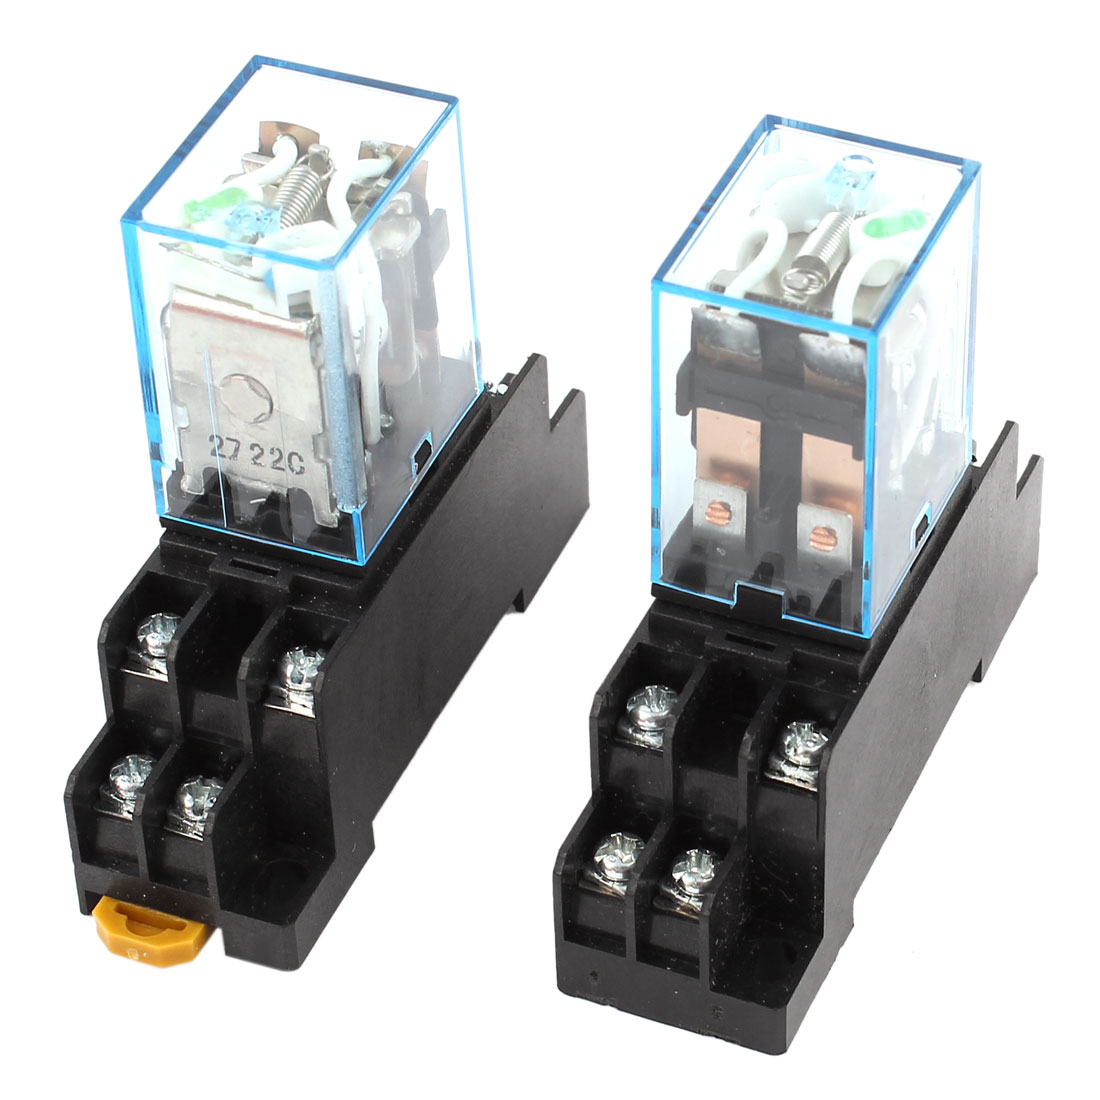 2 Pcs DC 12V Green Light DPDT 35mm DIN Rail Electromagnetic Power Relay + Socket